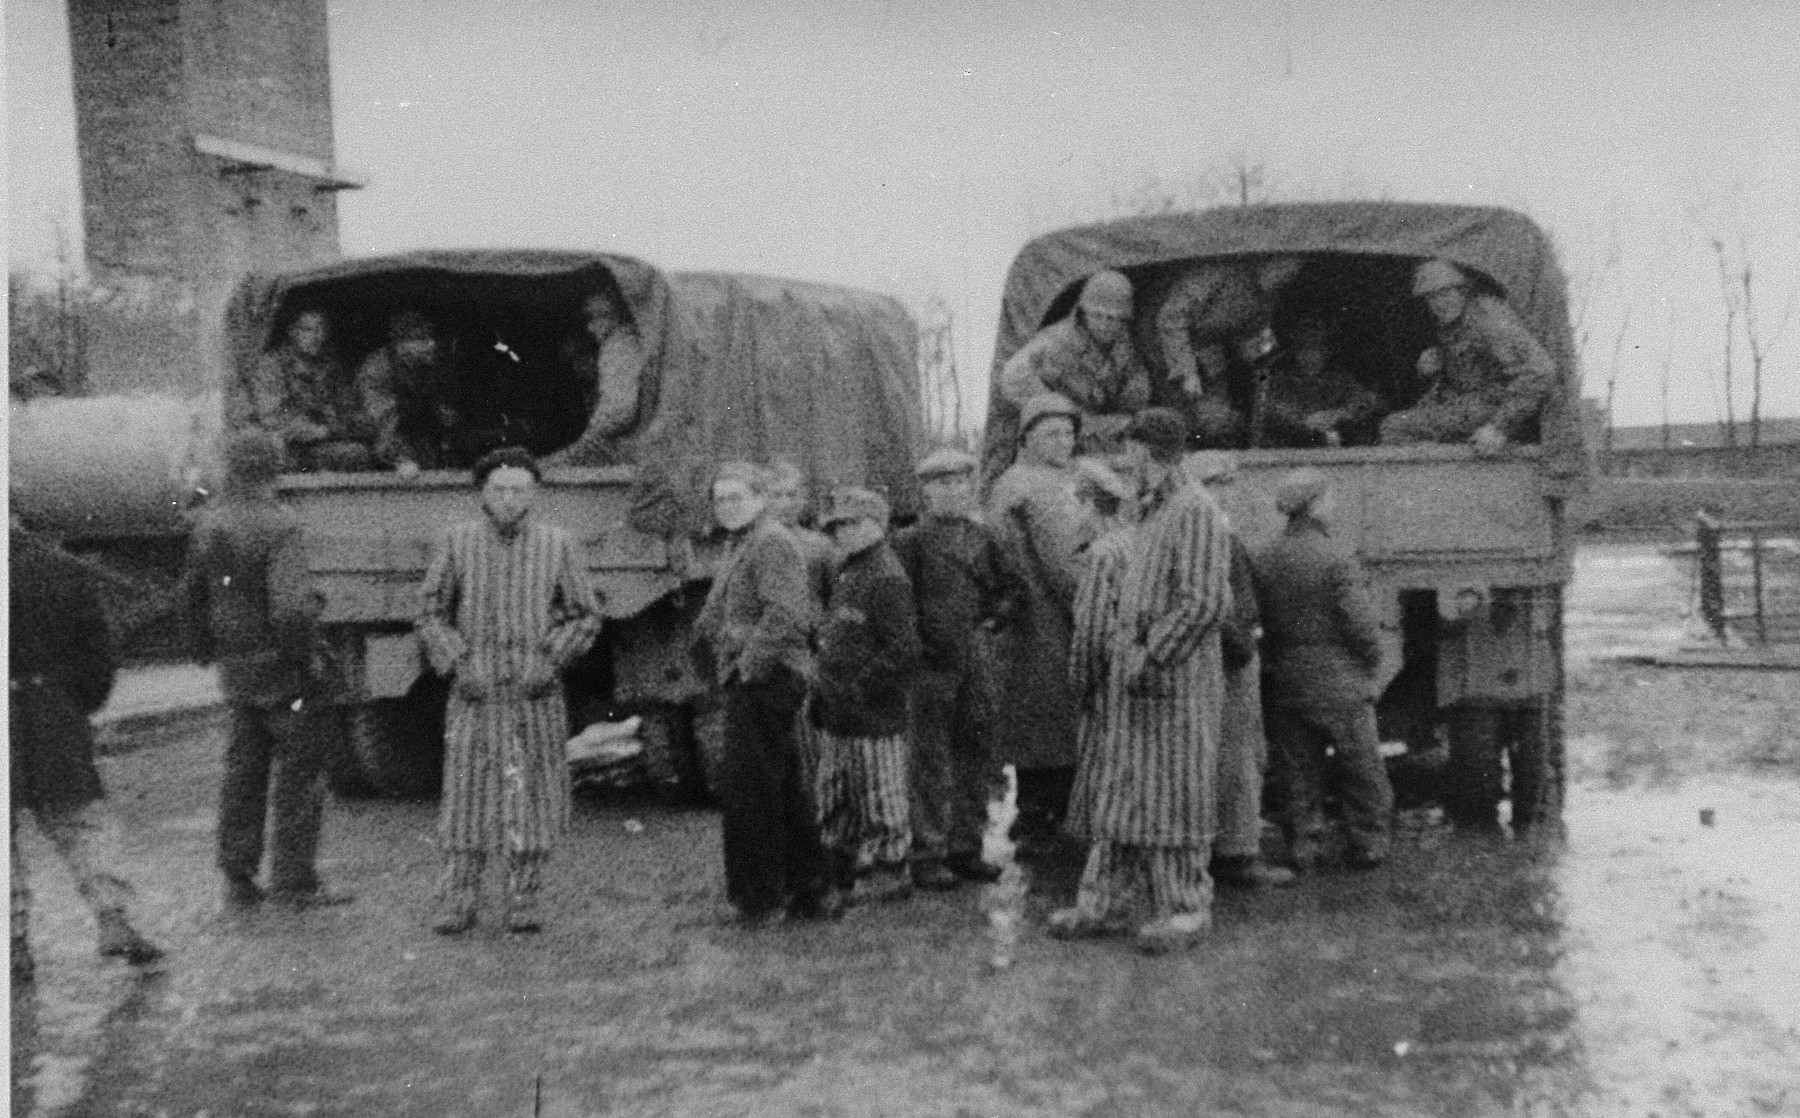 Survivors in Buchenwald gather in front of American Army trucks.